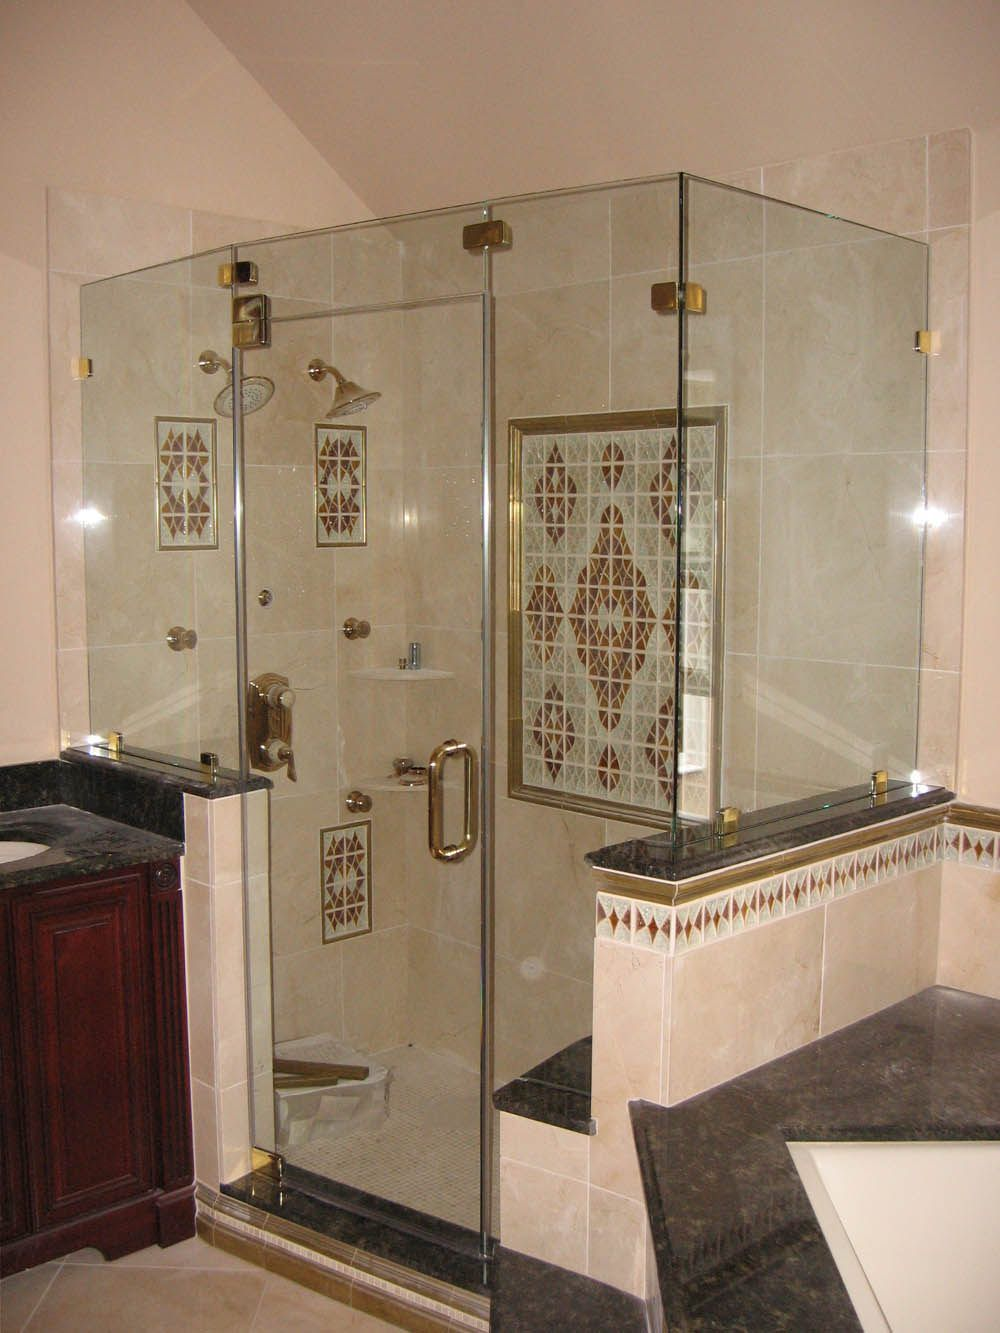 How To Clean Glass Shower Doors Double Sliding Glass Shower Doors